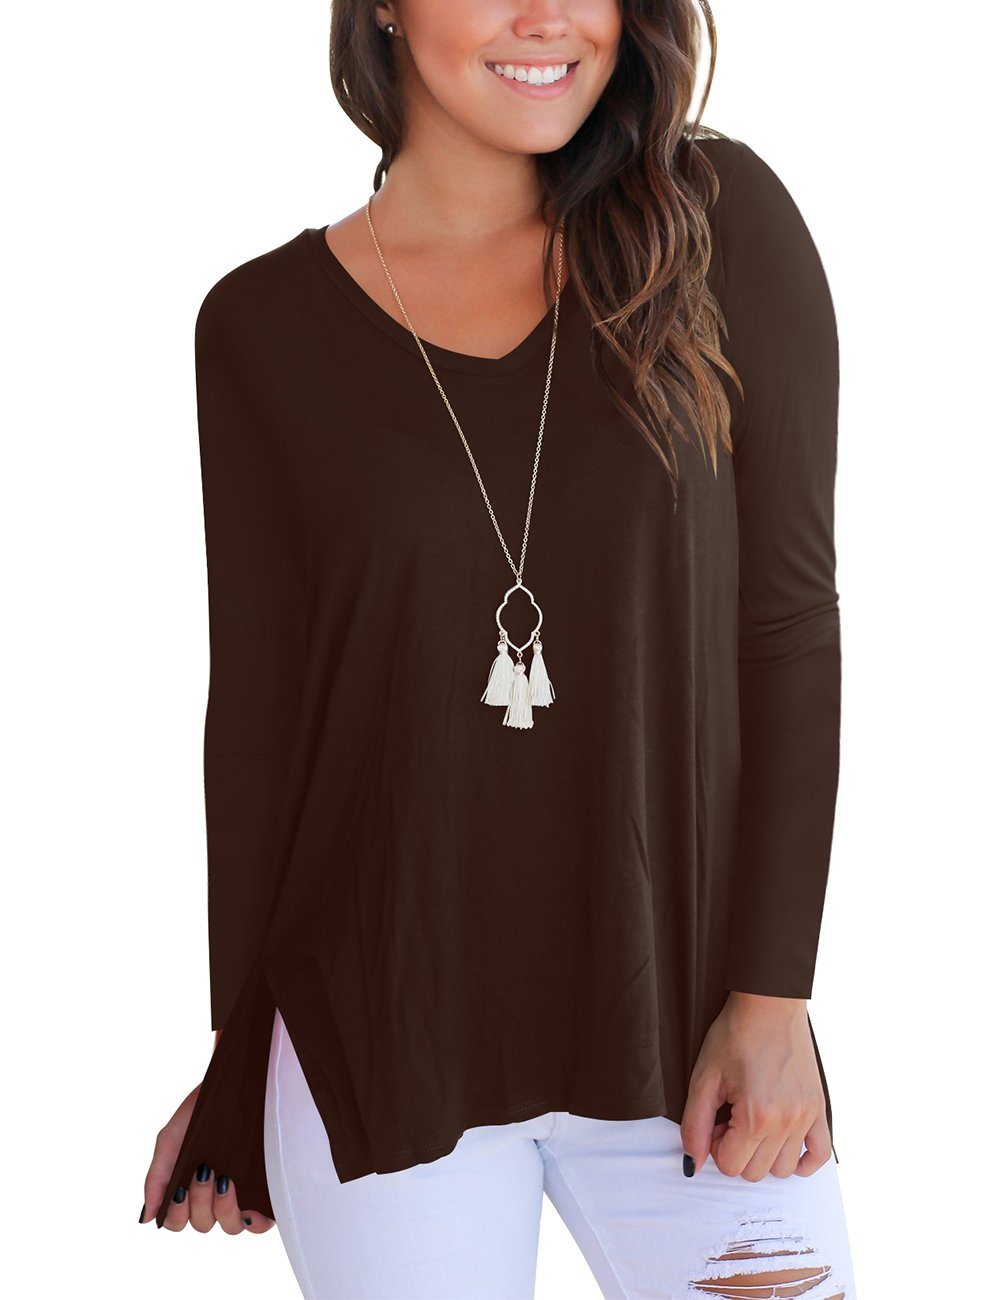 Long Sleeve Tops for Women Casual Loose T Shirt Cotton Tees Coffee M